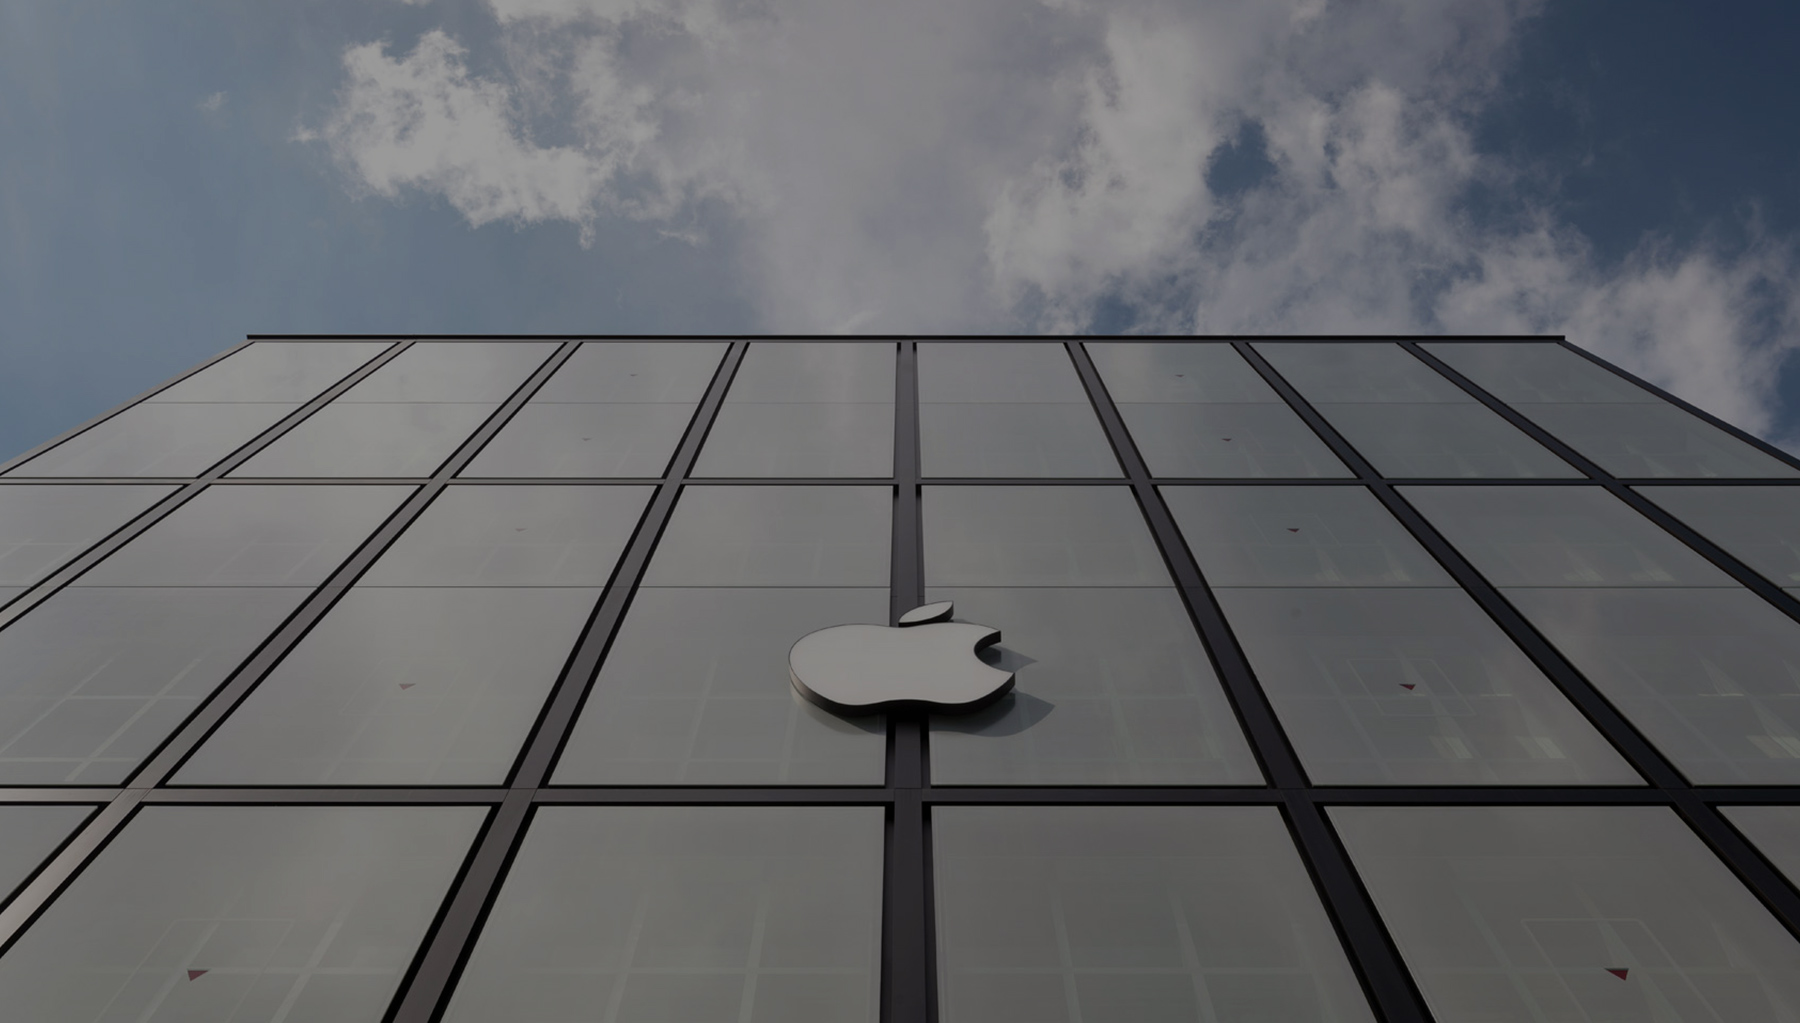 Apple's head of global security is at the center of a bribery scandal